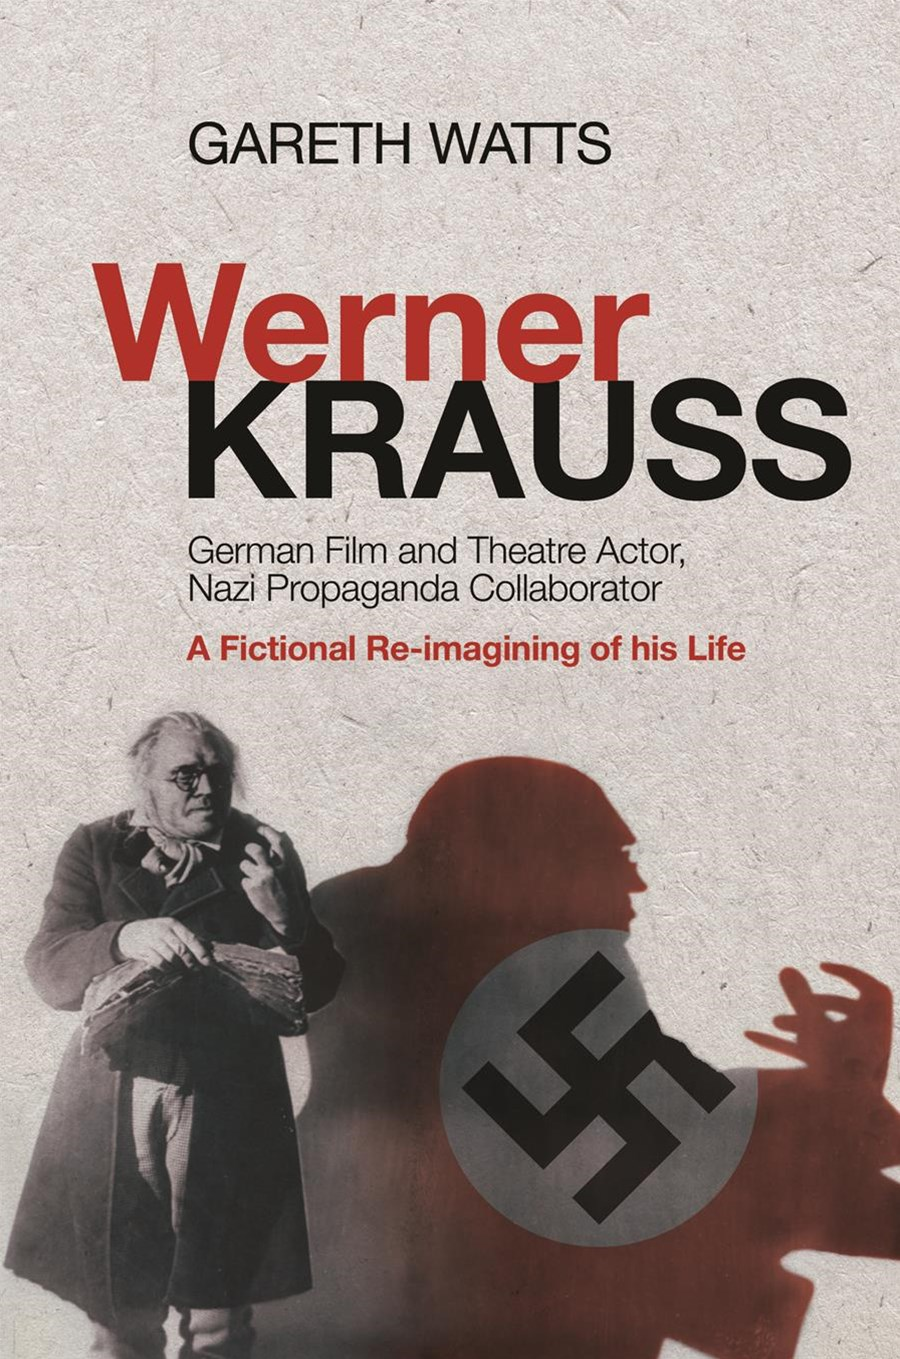 Werner Krauss - German Film and Theatre Actor, Nazi Propaganda Collaborator